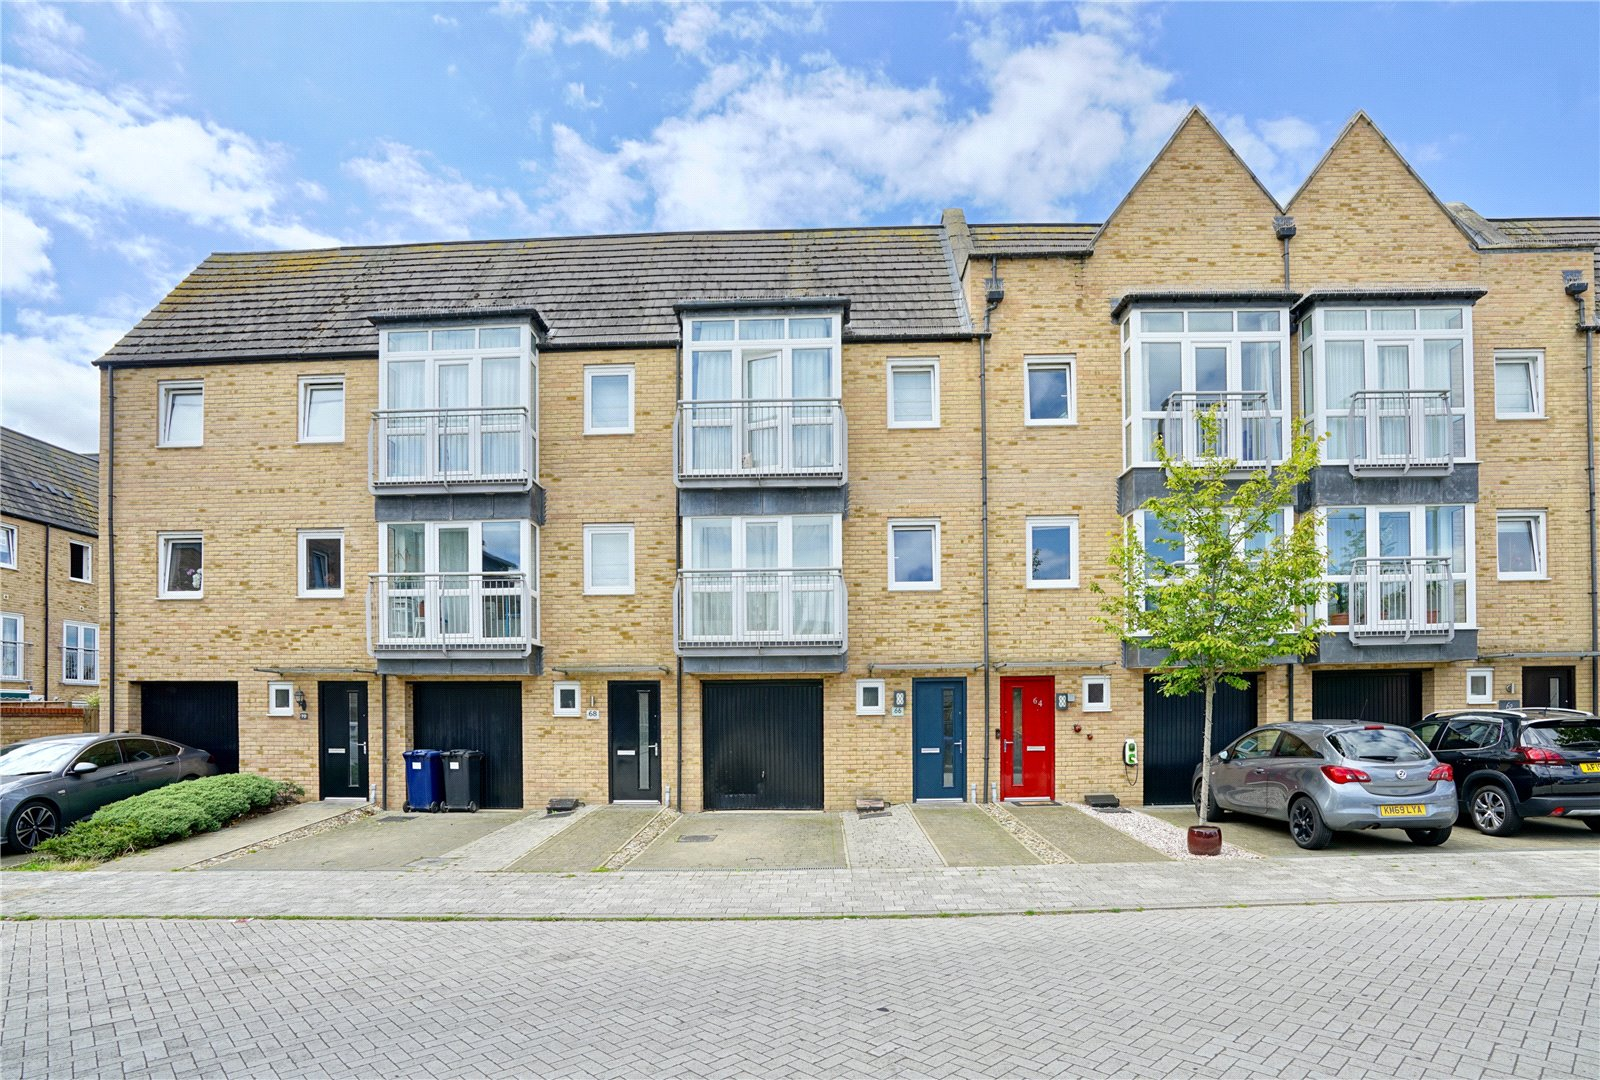 4 bed house for sale in Little Paxton, Samuel Jones Crescent, PE19 6QY, PE19